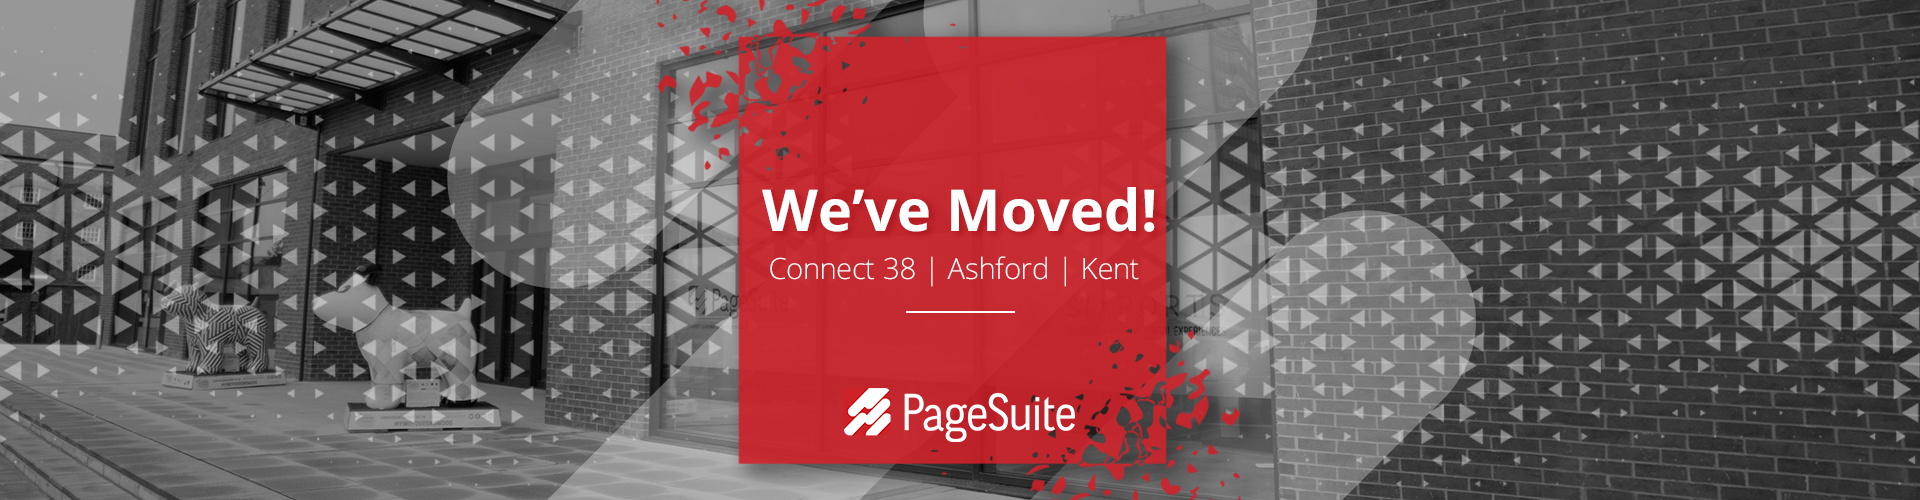 PageSuite Move to a New HQ!